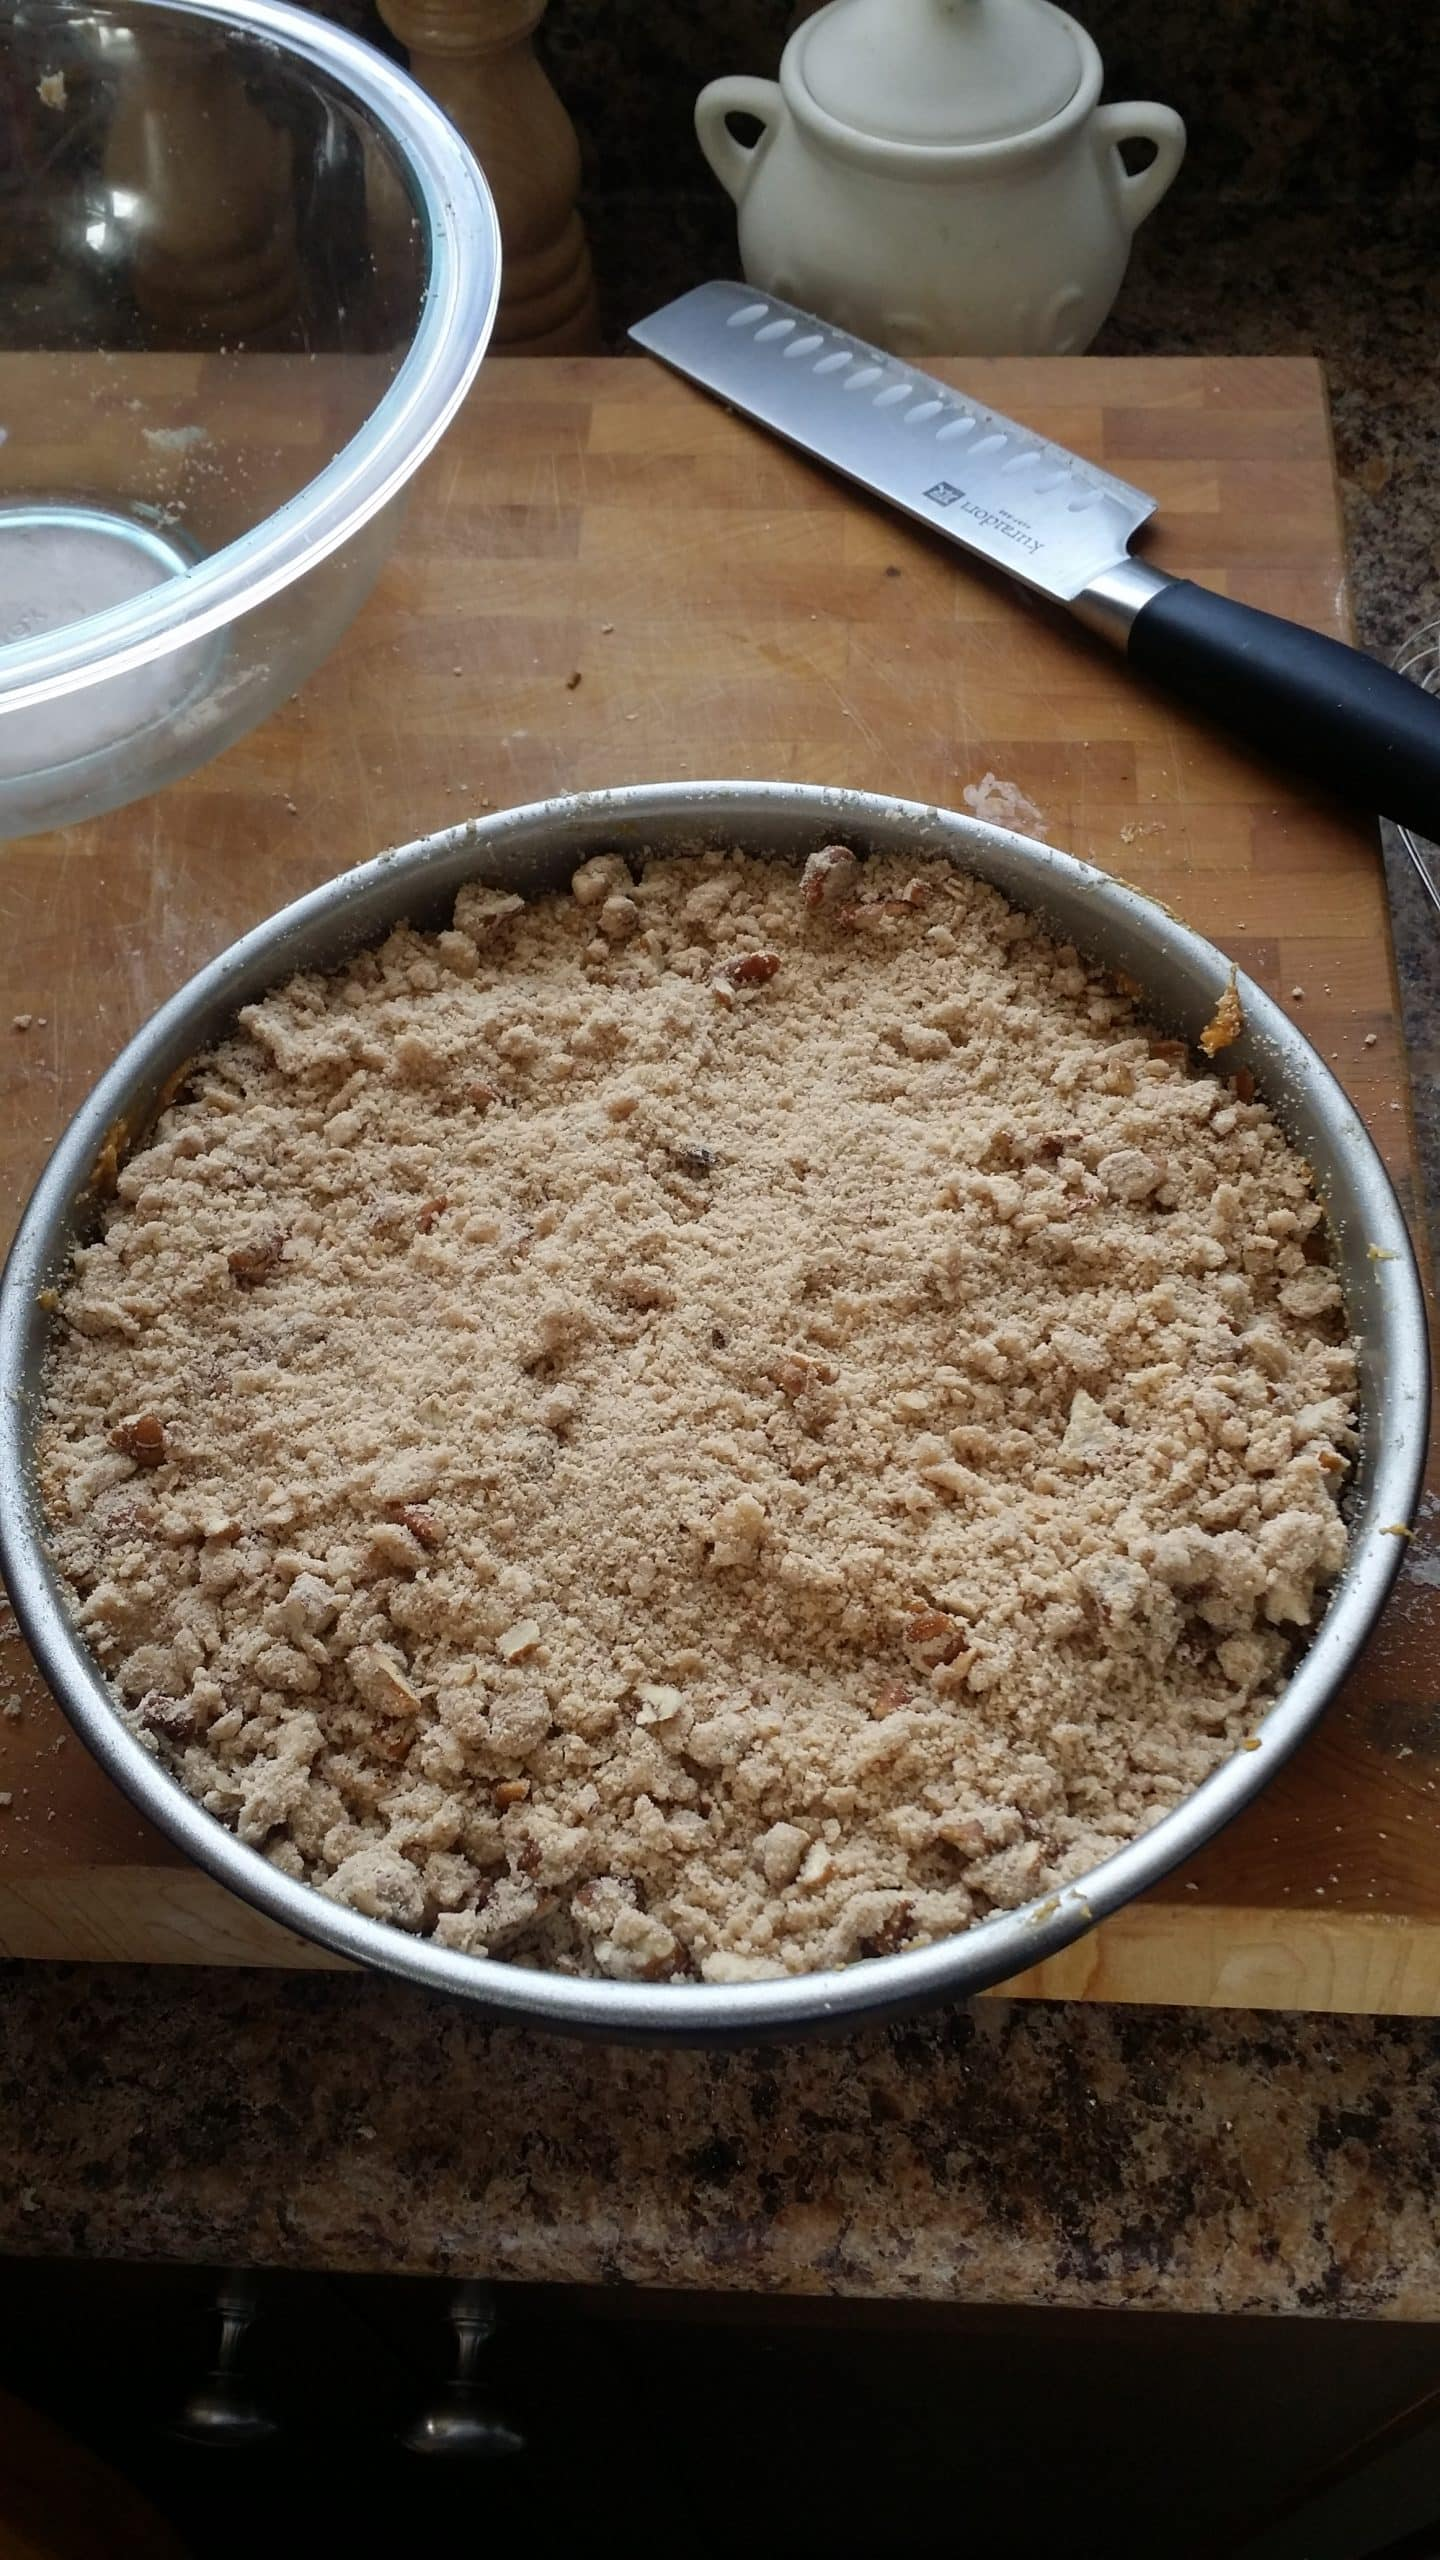 Streusel on top of batter.